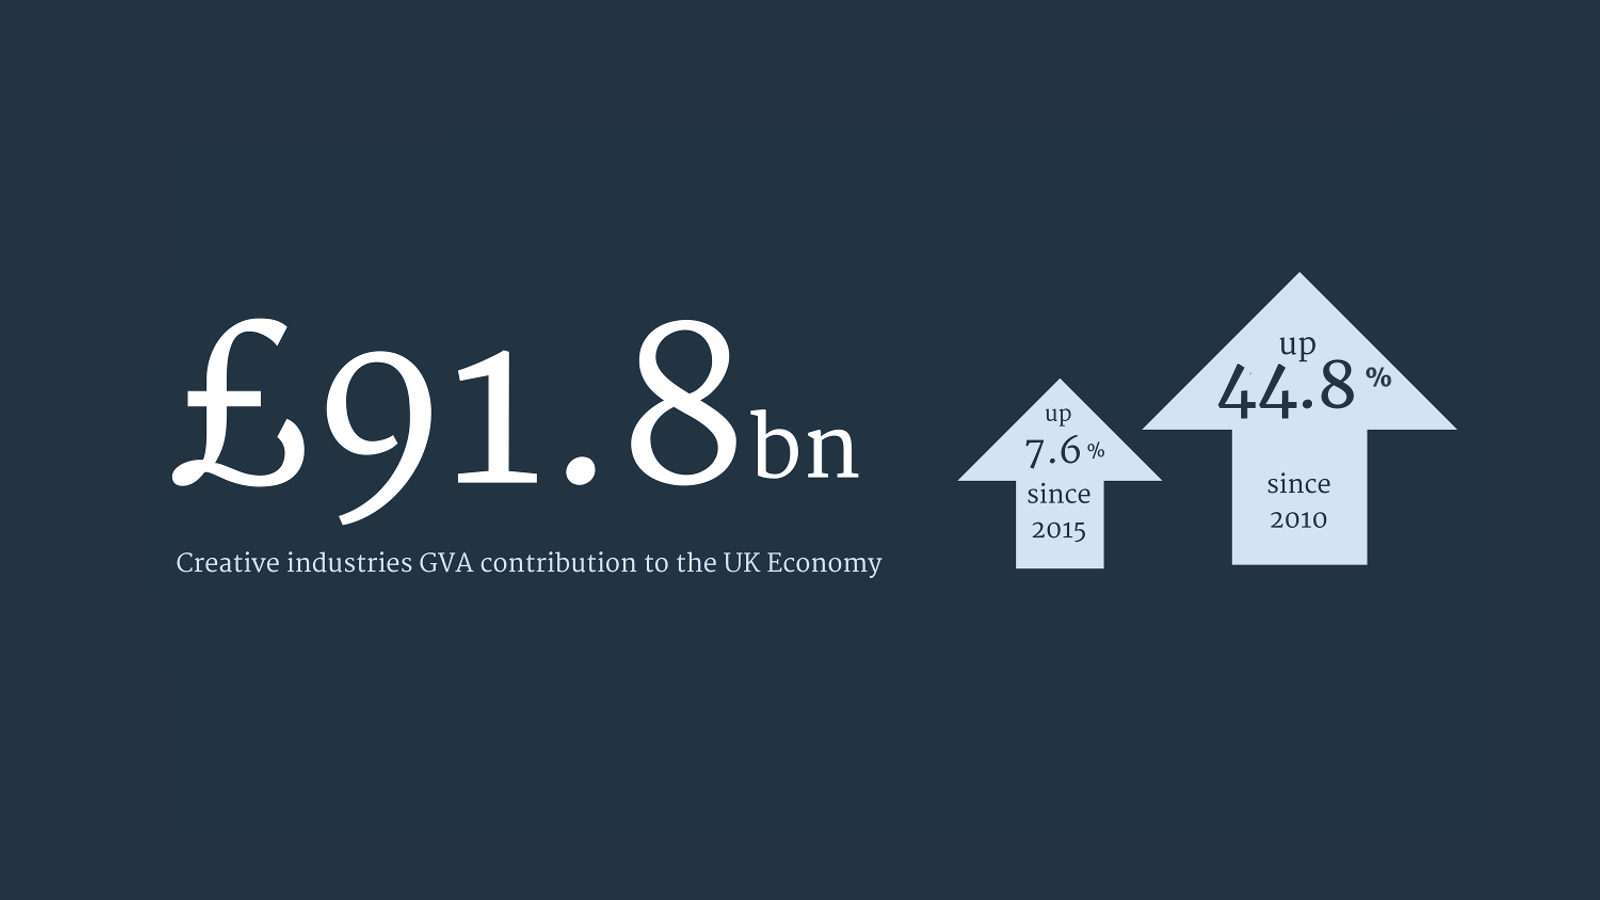 creative industries uk gva growth £91.8bn